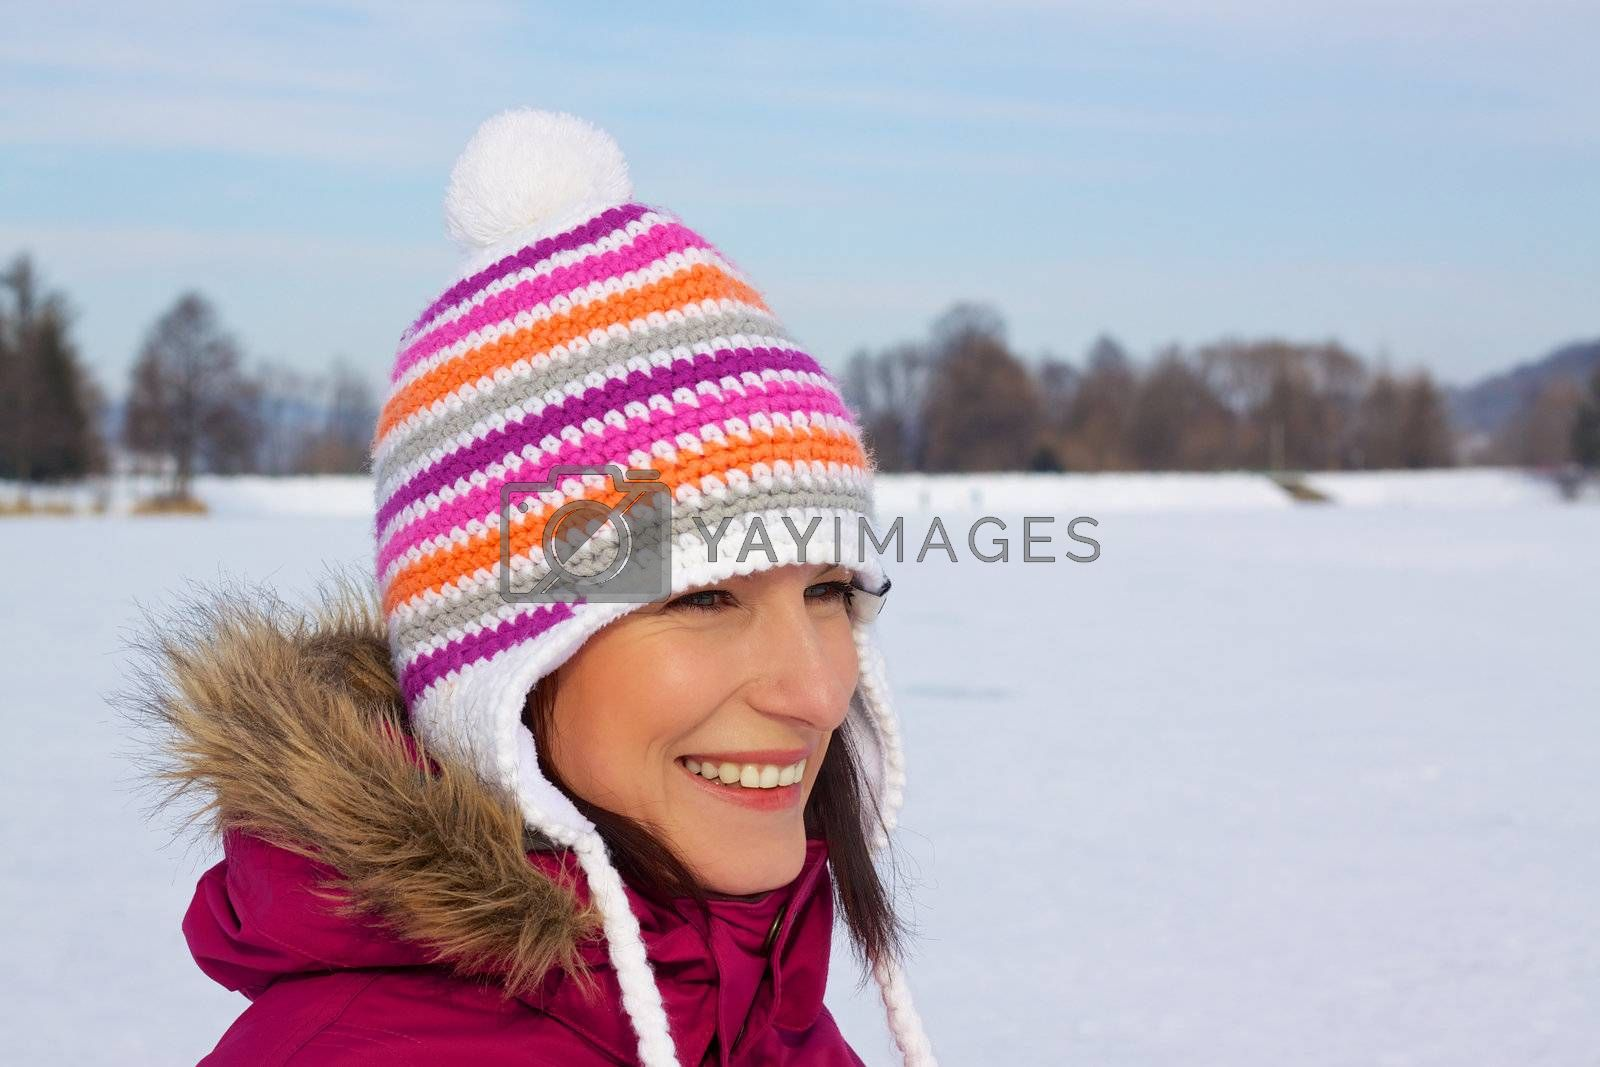 Smiling young woman wearing knitted winter cap with natural winter background